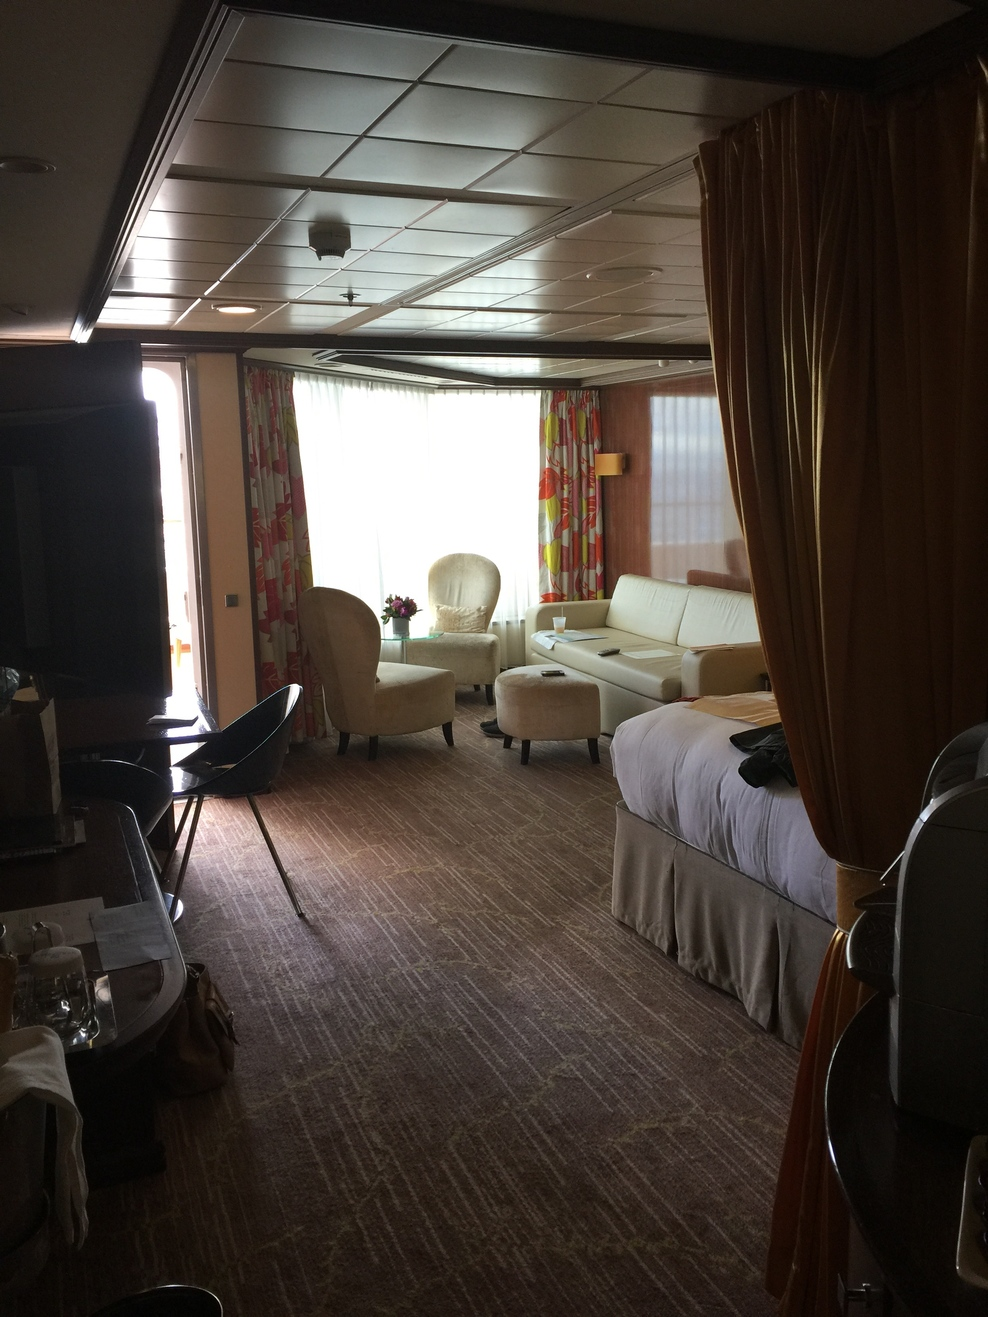 Cabin On Norwegian Pearl Cruise Ship Cruise Critic